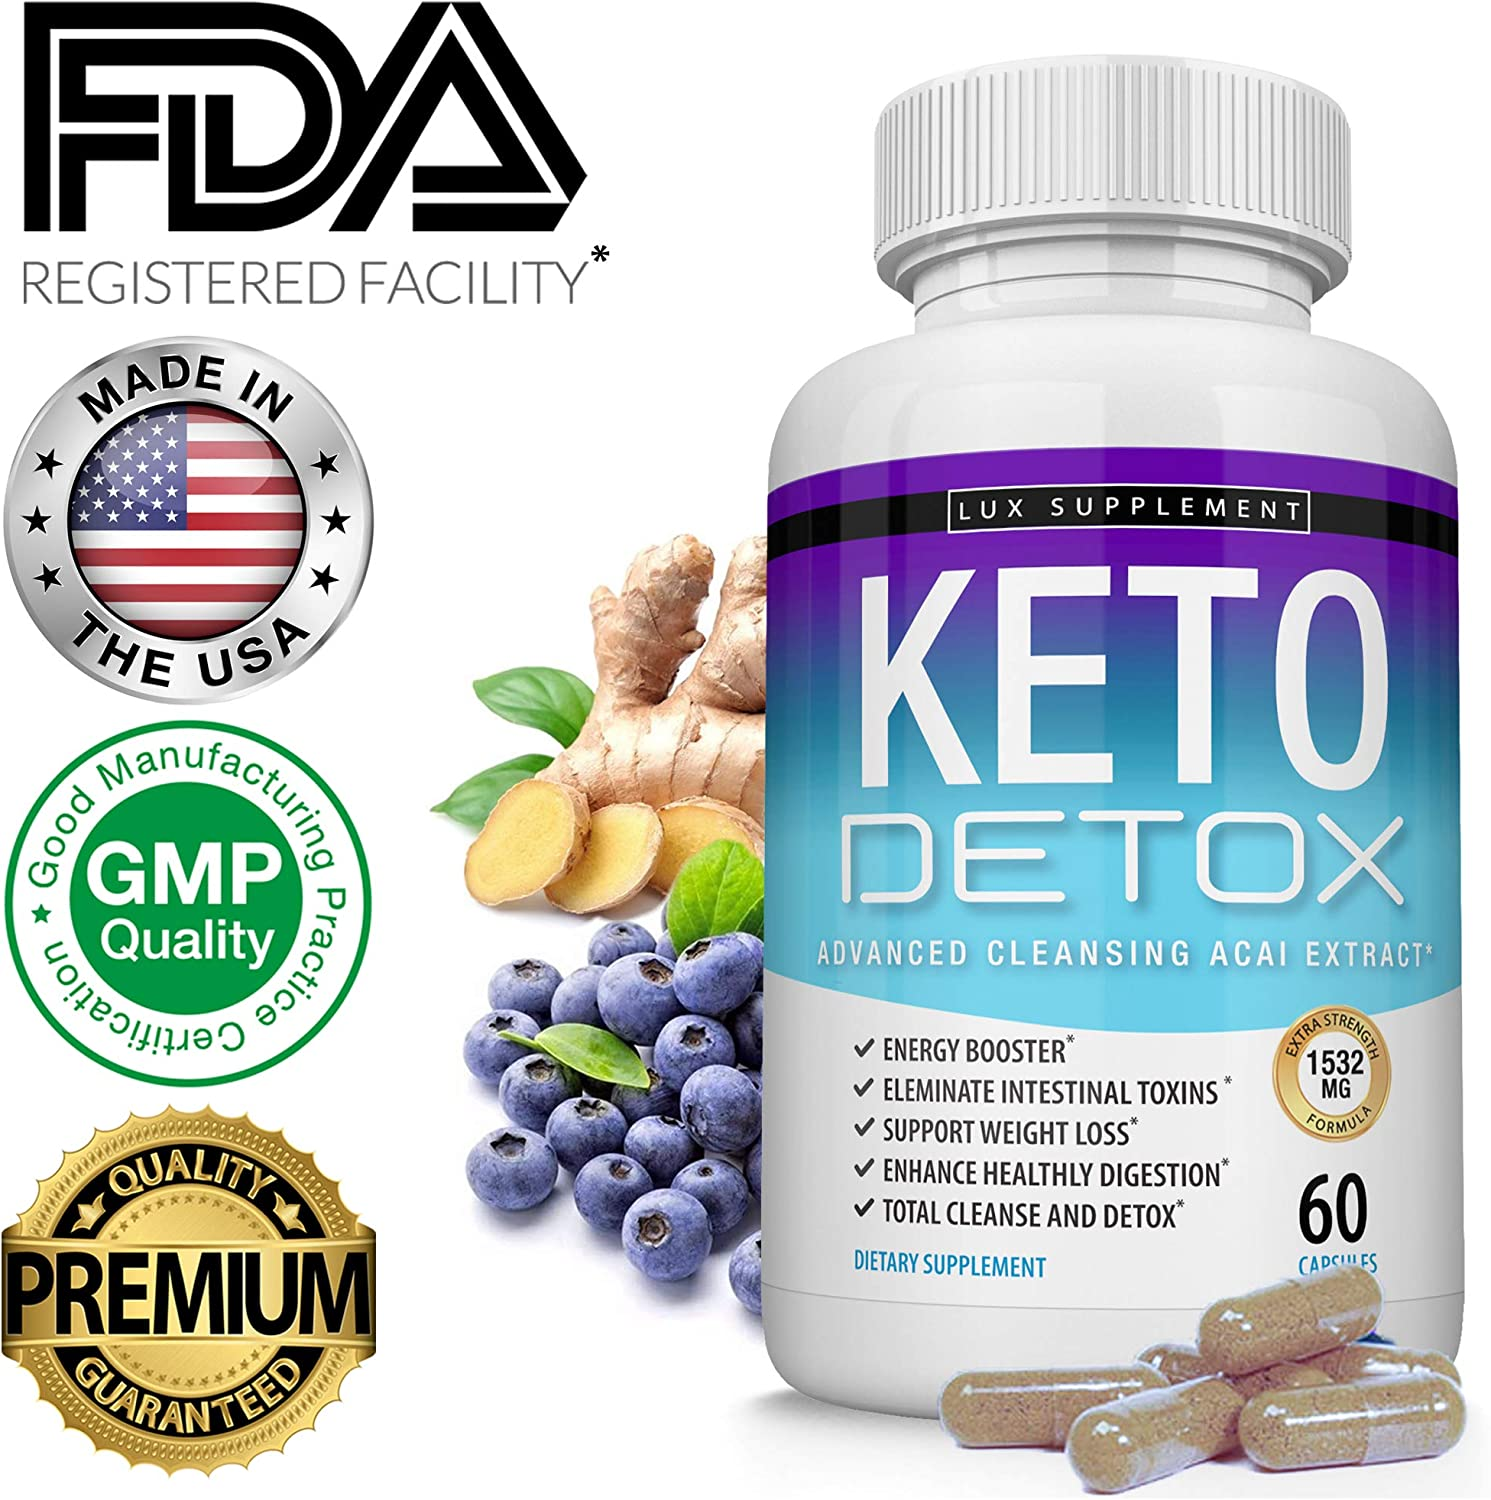 Keto Detox Pills Advanced Cleansing Extract 1532 Mg Natural Acai Colon Cleanser Formula Using Ketosis Ketogenic Diet, Flush Toxins Excess Waste, for Men Women, 60 Capsules, Lux Supplement